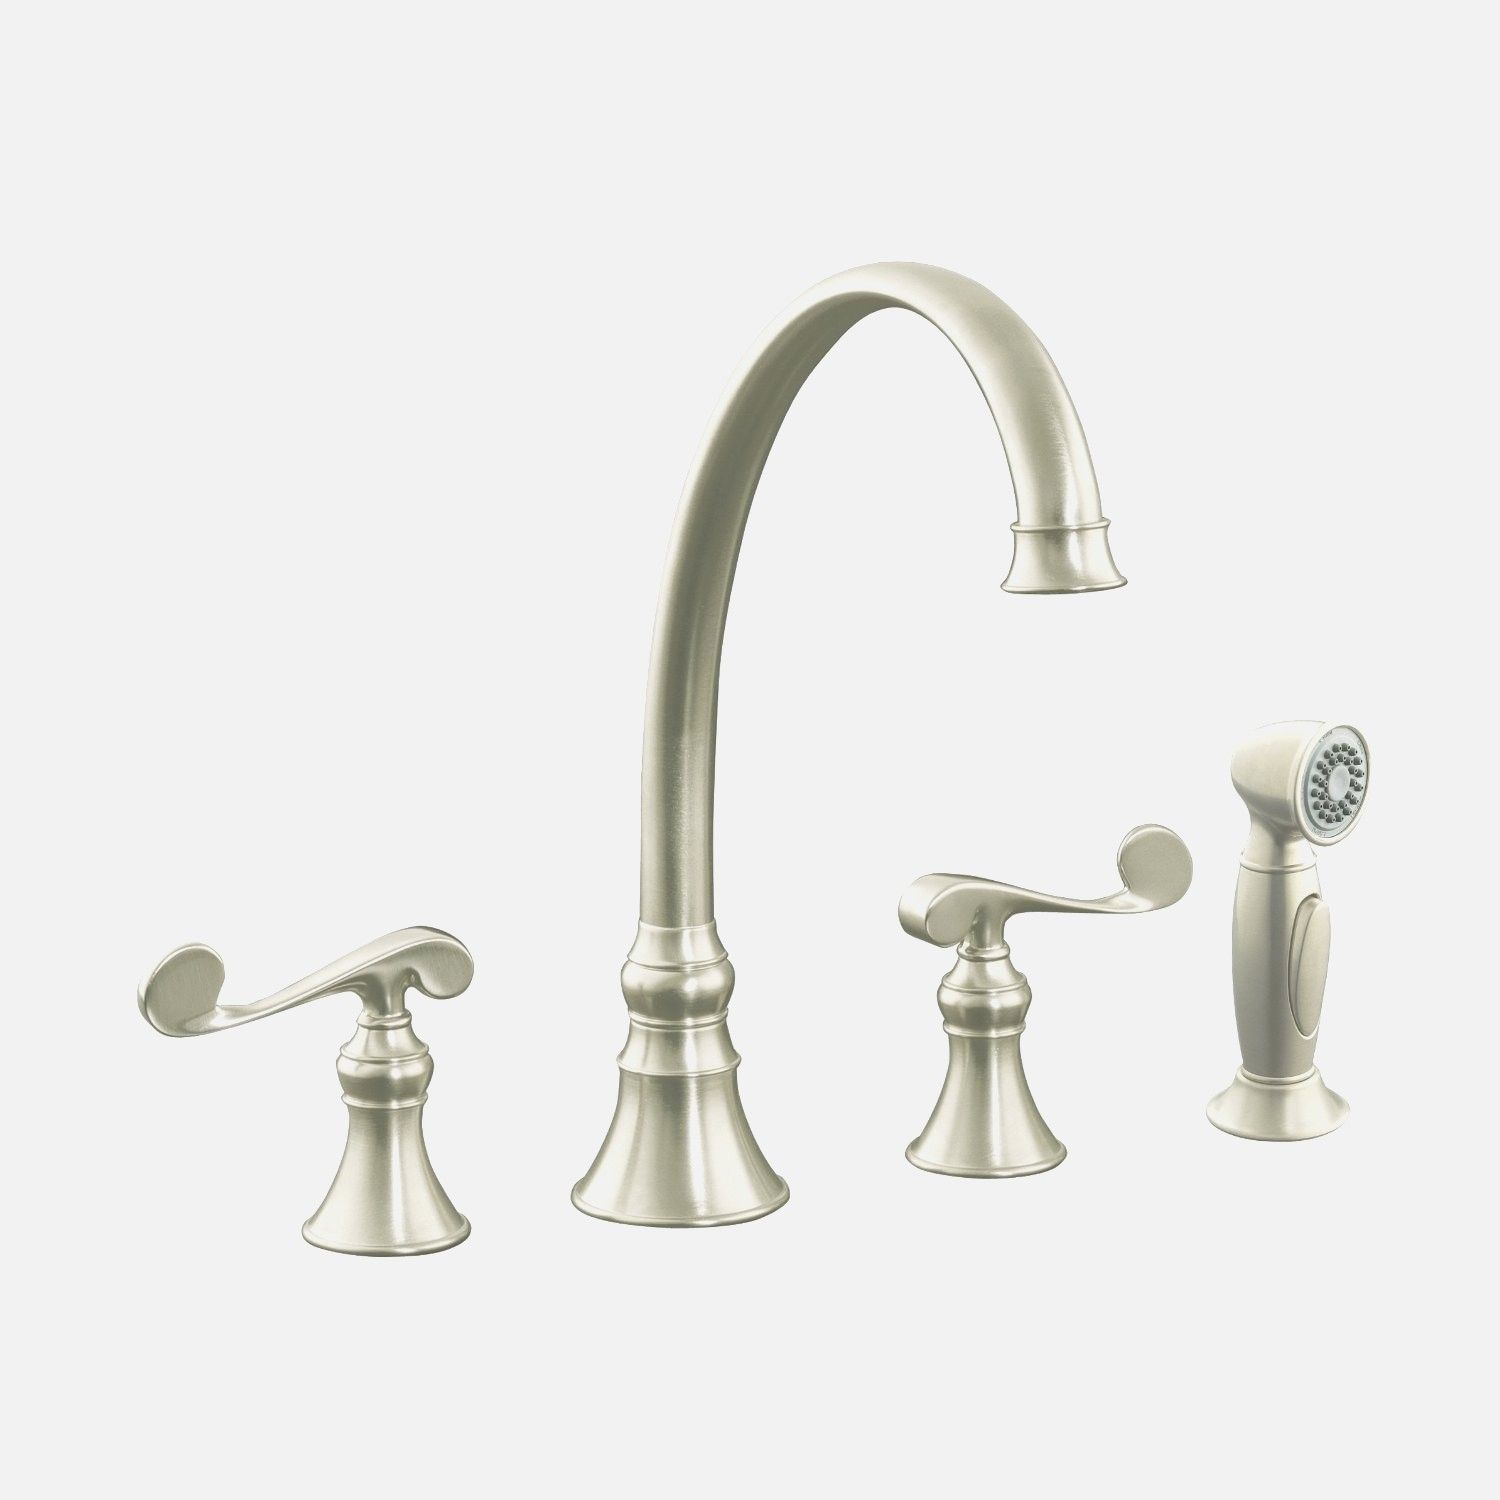 Home Depot Delta Kitchen Faucets home depot kitchen faucet hose